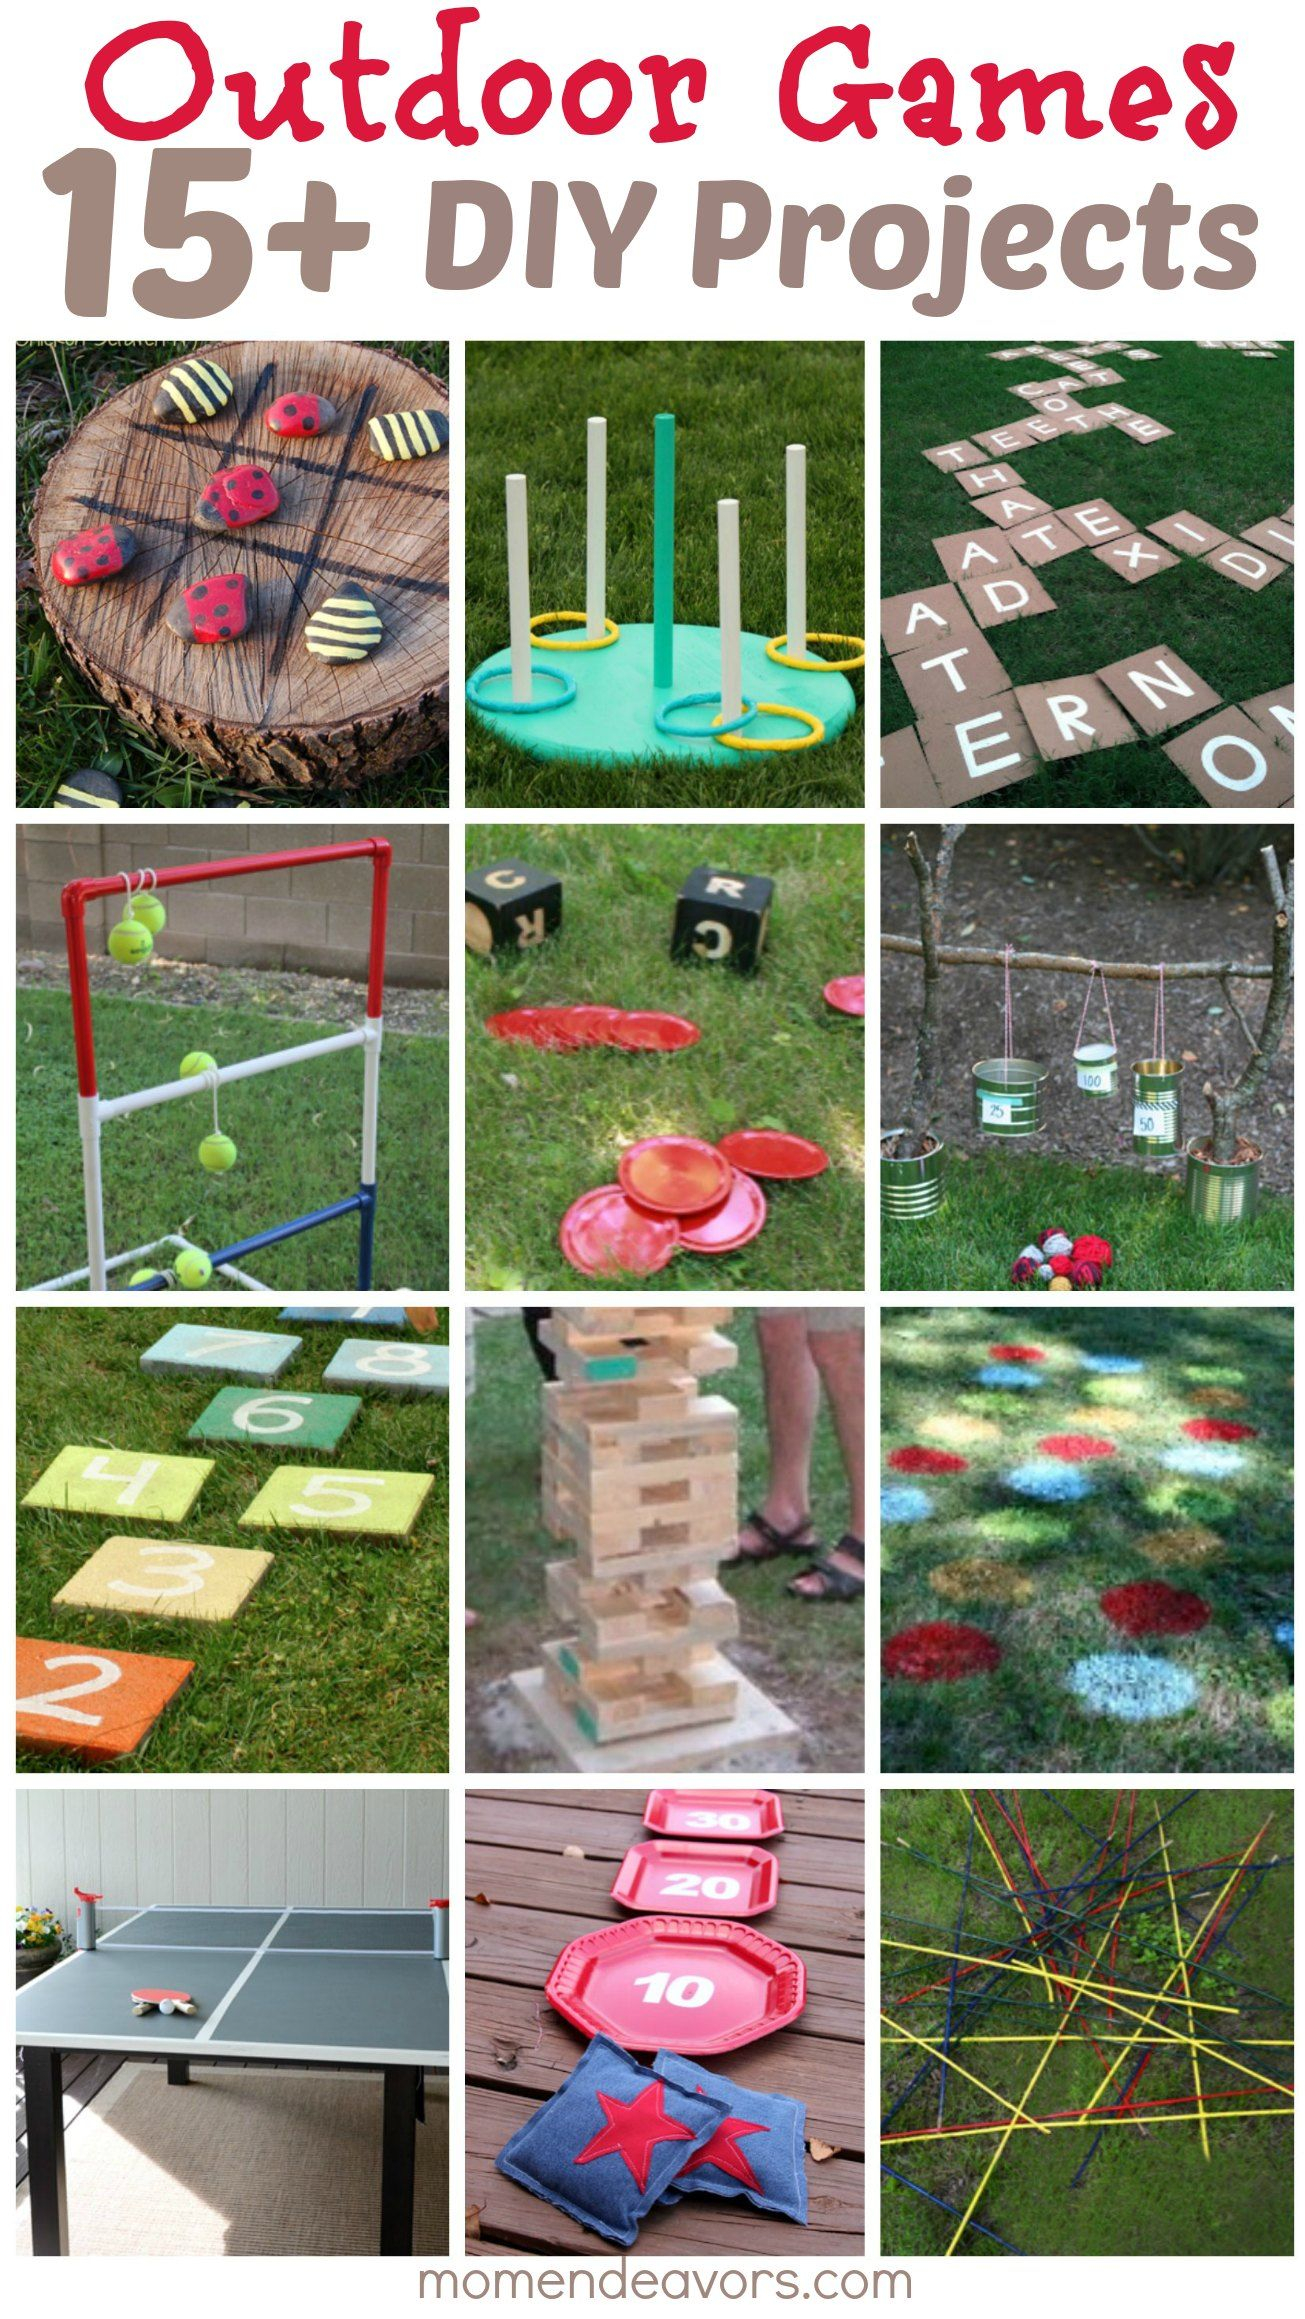 Diy Outdoor Games 15 Awesome Project Ideas For Backyard with 12 Some of the Coolest Initiatives of How to Upgrade Backyard Kid Ideas